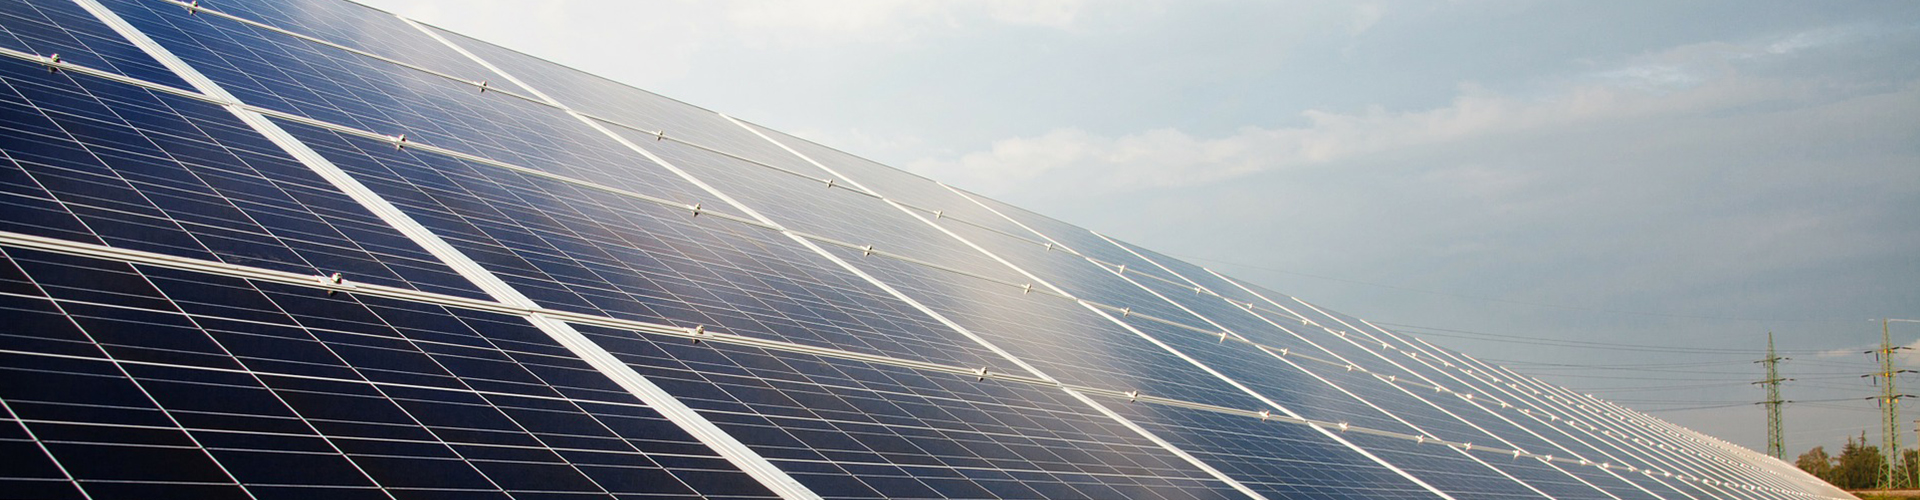 Cost to install solar panels on roof - Solar Panel Costs